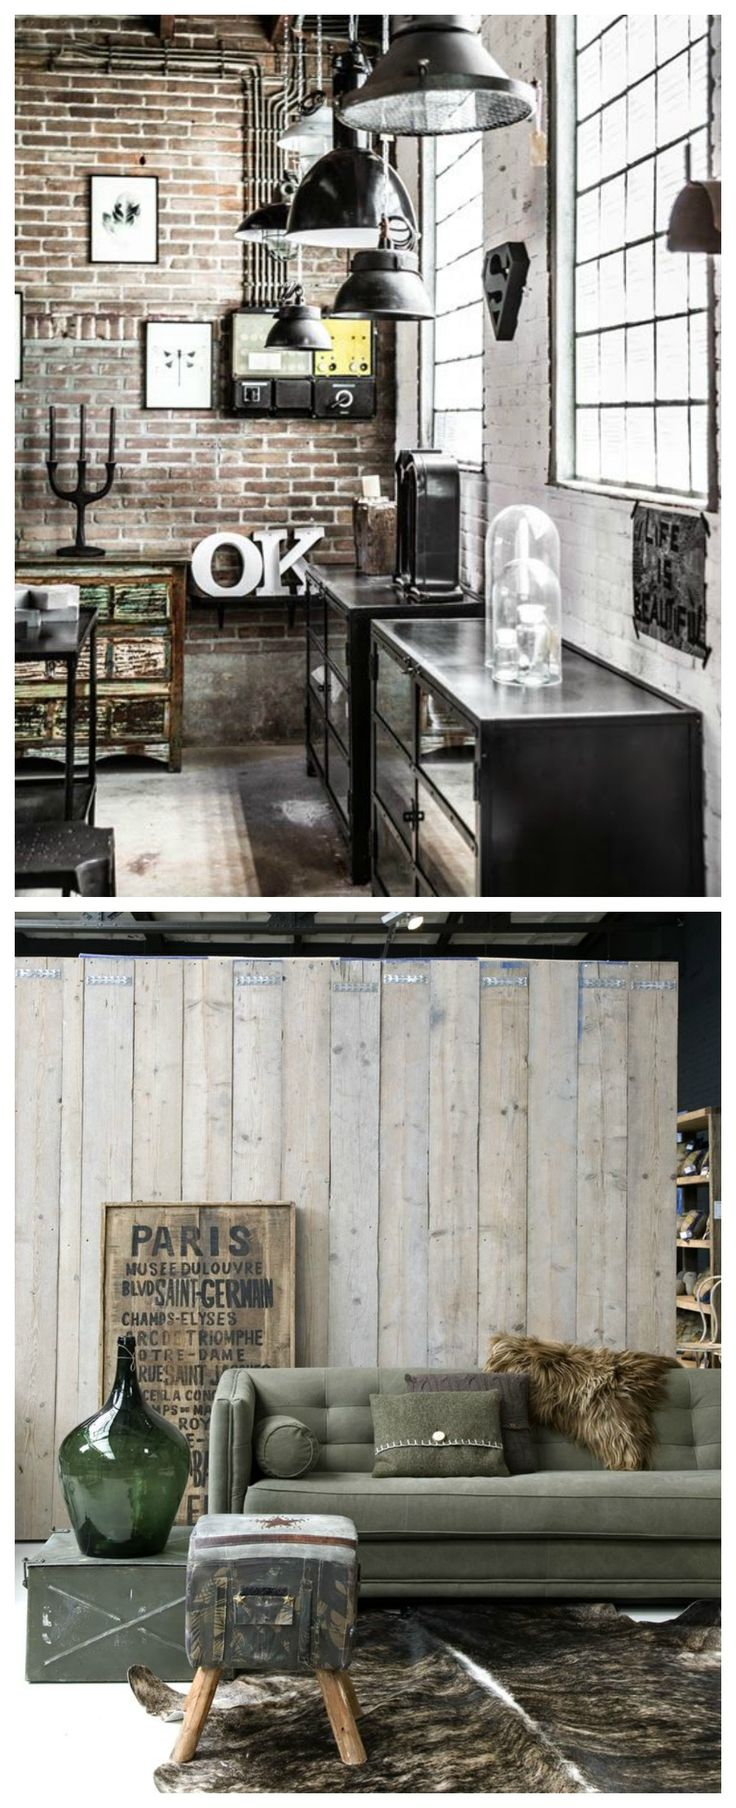 17 mejores ideas sobre apartamento industrial en pinterest for Diseno industrial casas